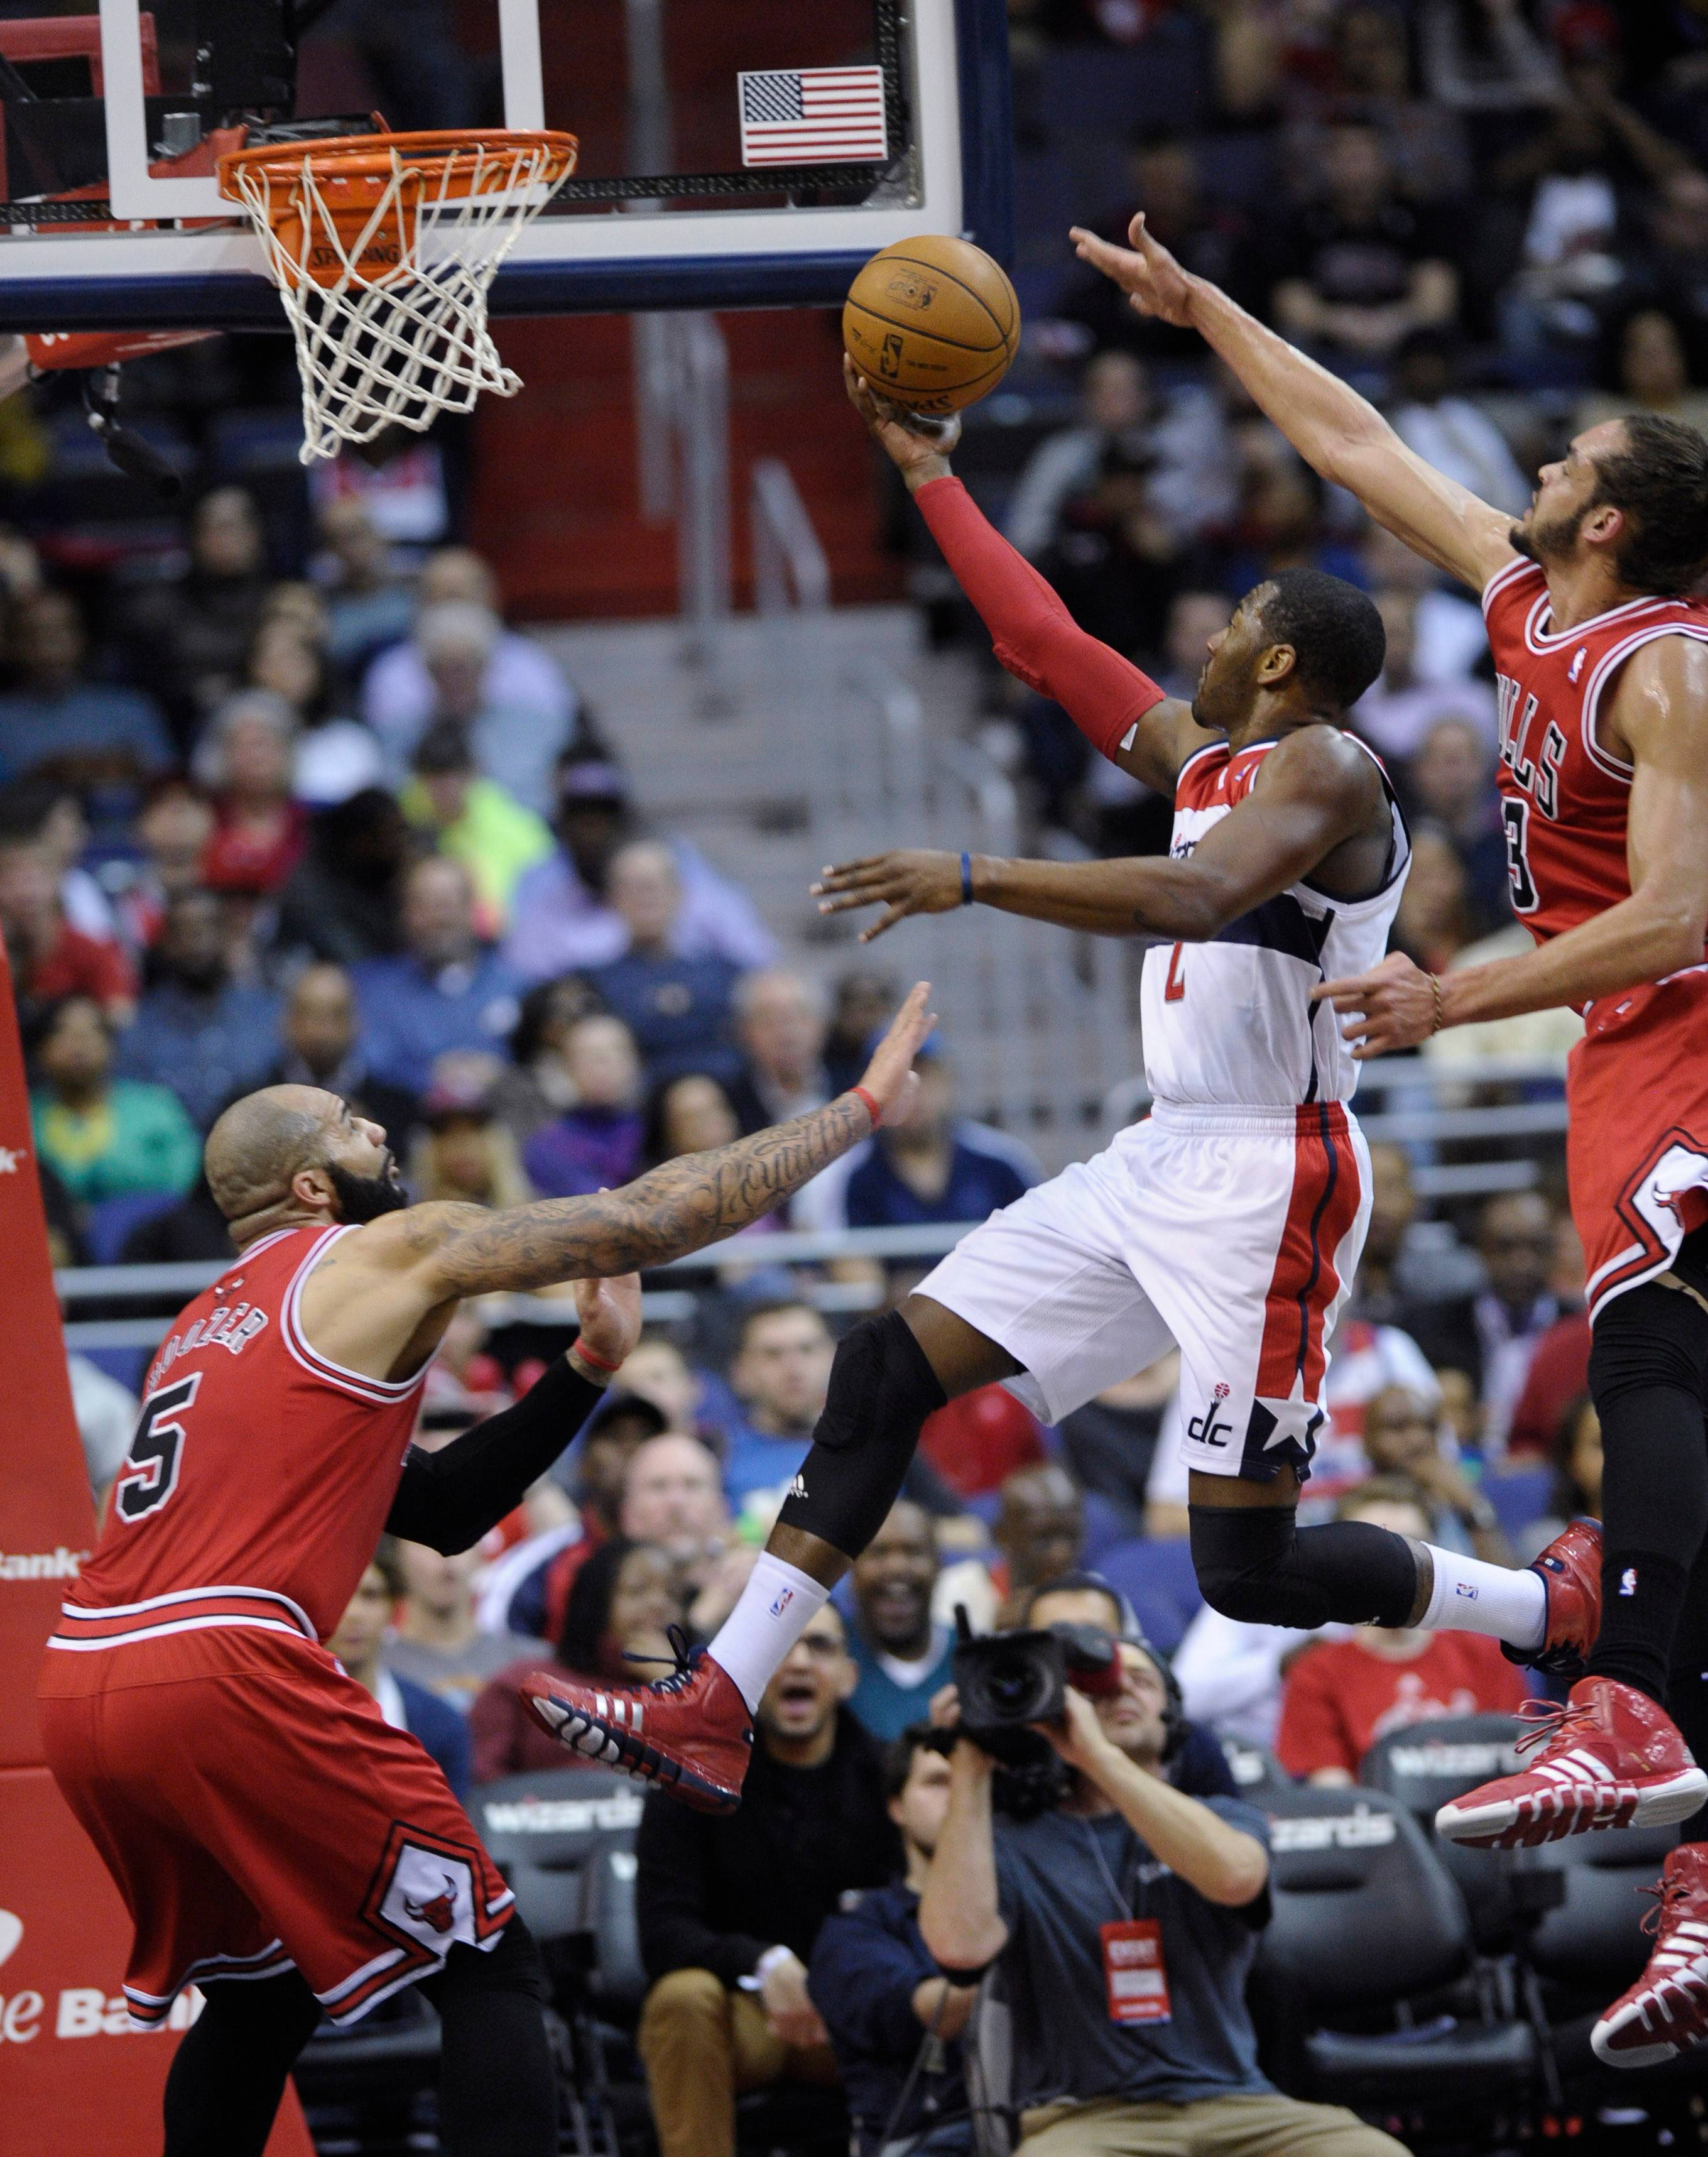 Washington Wizards guard John Wall, center, goes up for a shot under pressure from Chicago Bulls forward Carlos Boozer (5) and center Joakim Noah, right, during the first quarter of an NBA basketball game in Washington, Friday, Jan. 17, 2014. (AP Photo/Susan Walsh)